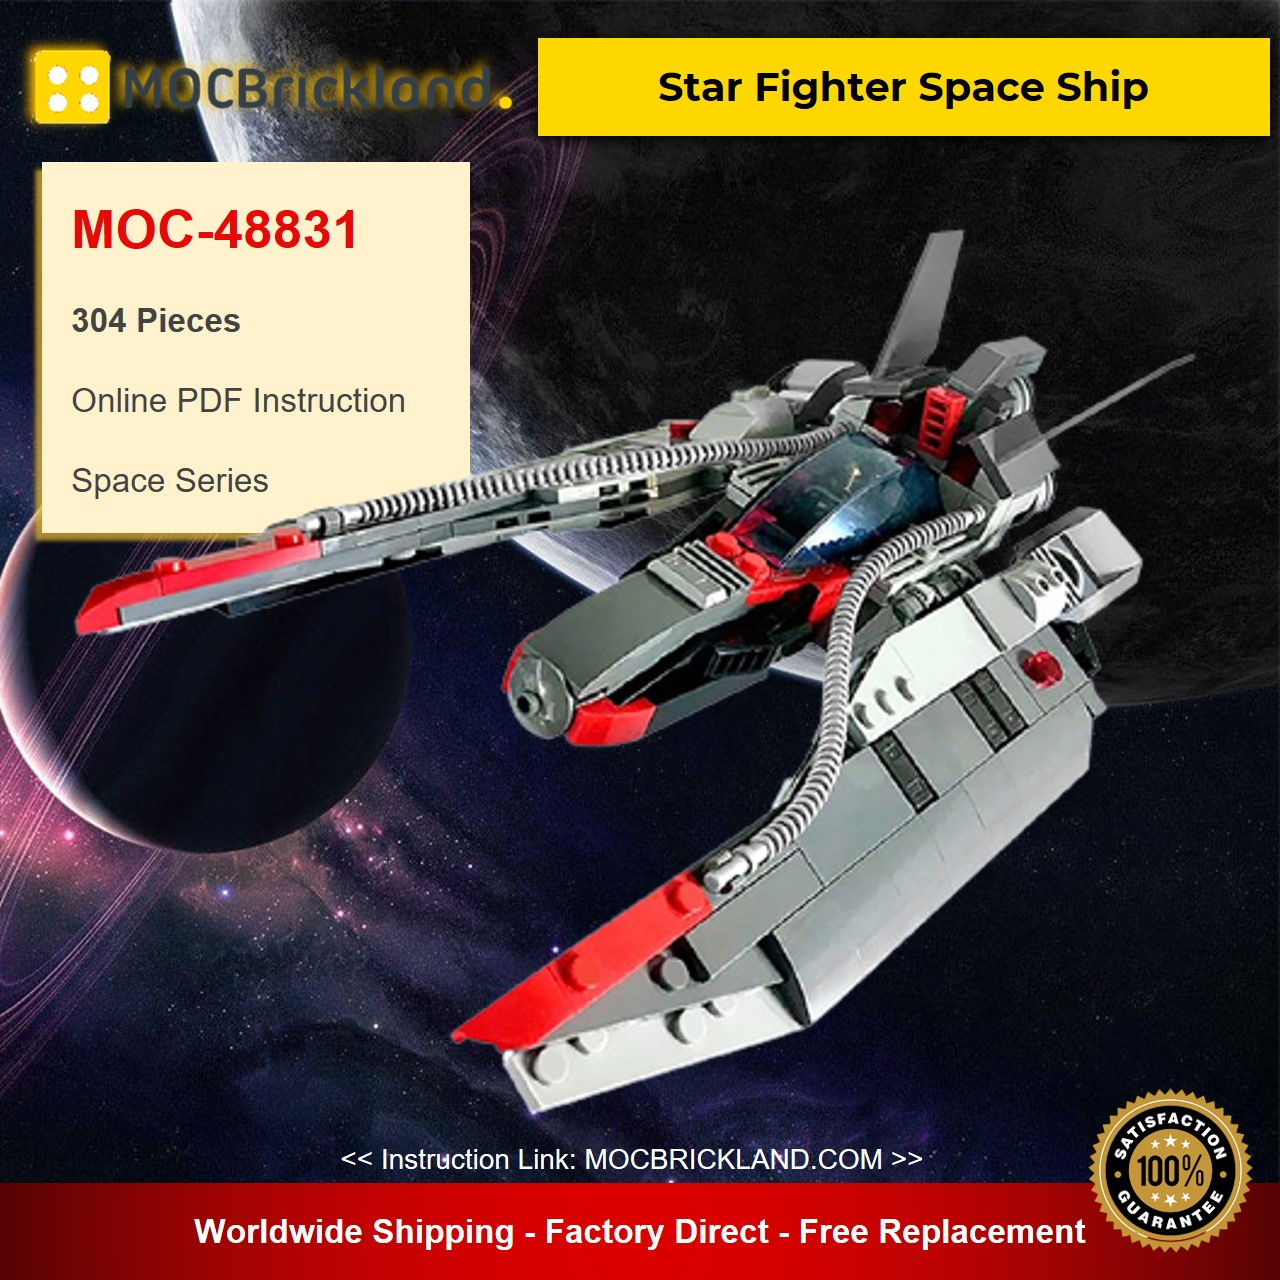 Star Fighter Space Ship MOC-48831 Space Designed By MadMocs With 304 Pieces